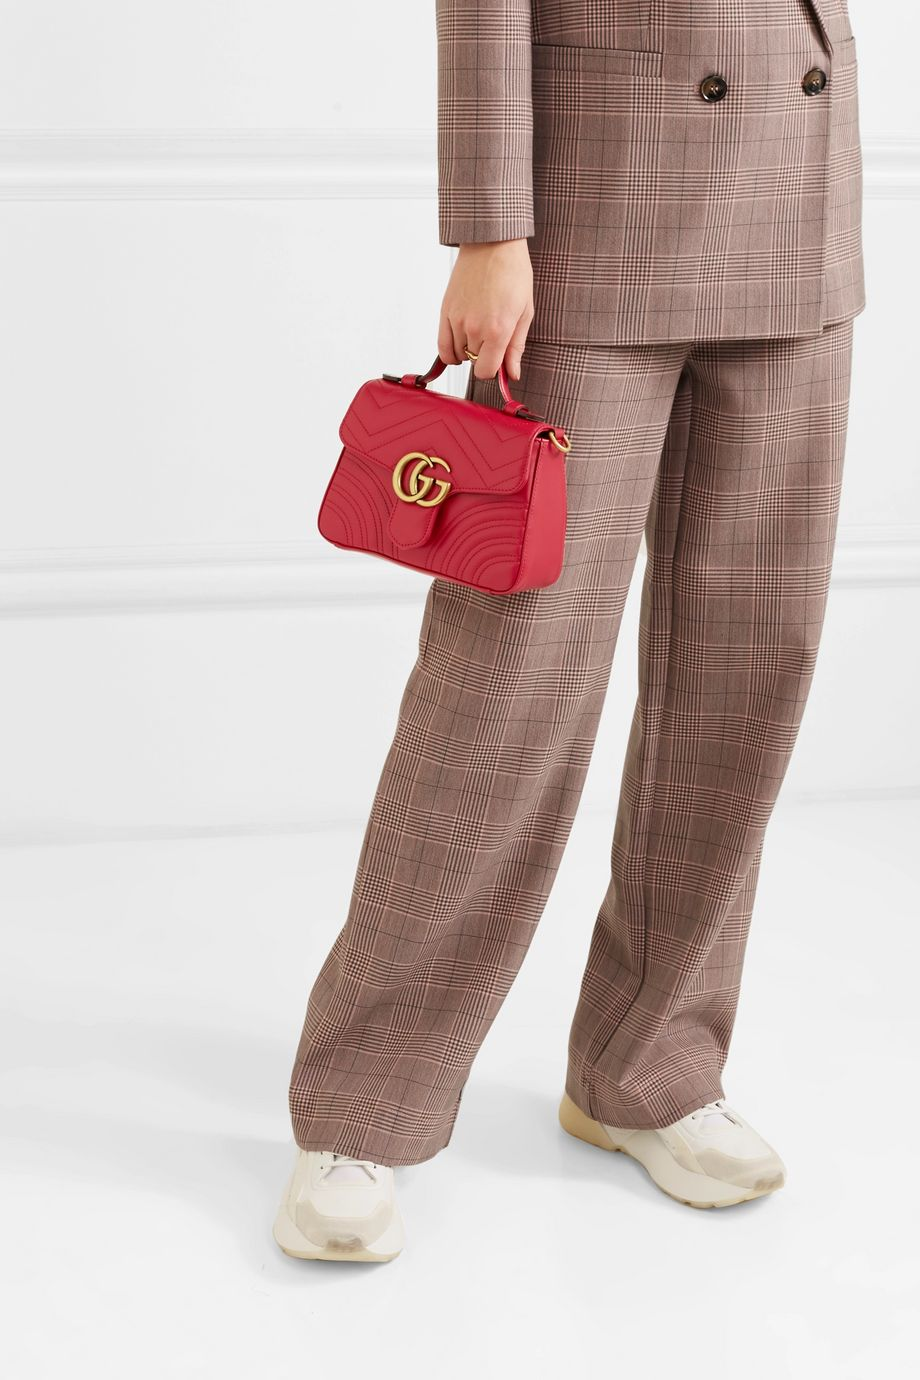 Gucci Marmont mini quilted leather shoulder bag